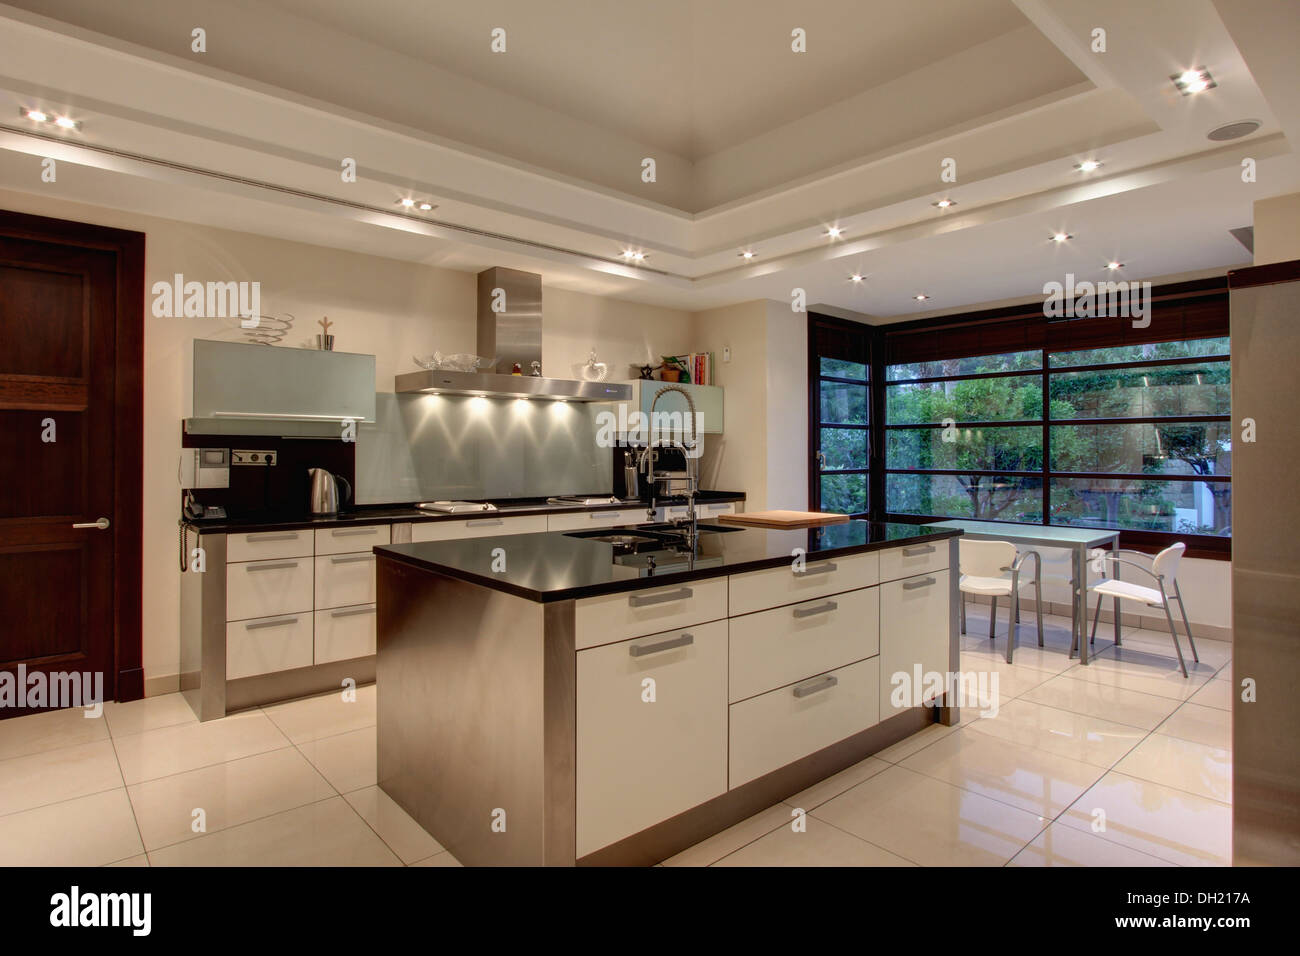 Down lighting on false ceiling in modern Spanish kitchen with stainless  steel island unit and white ceramic tiled floor